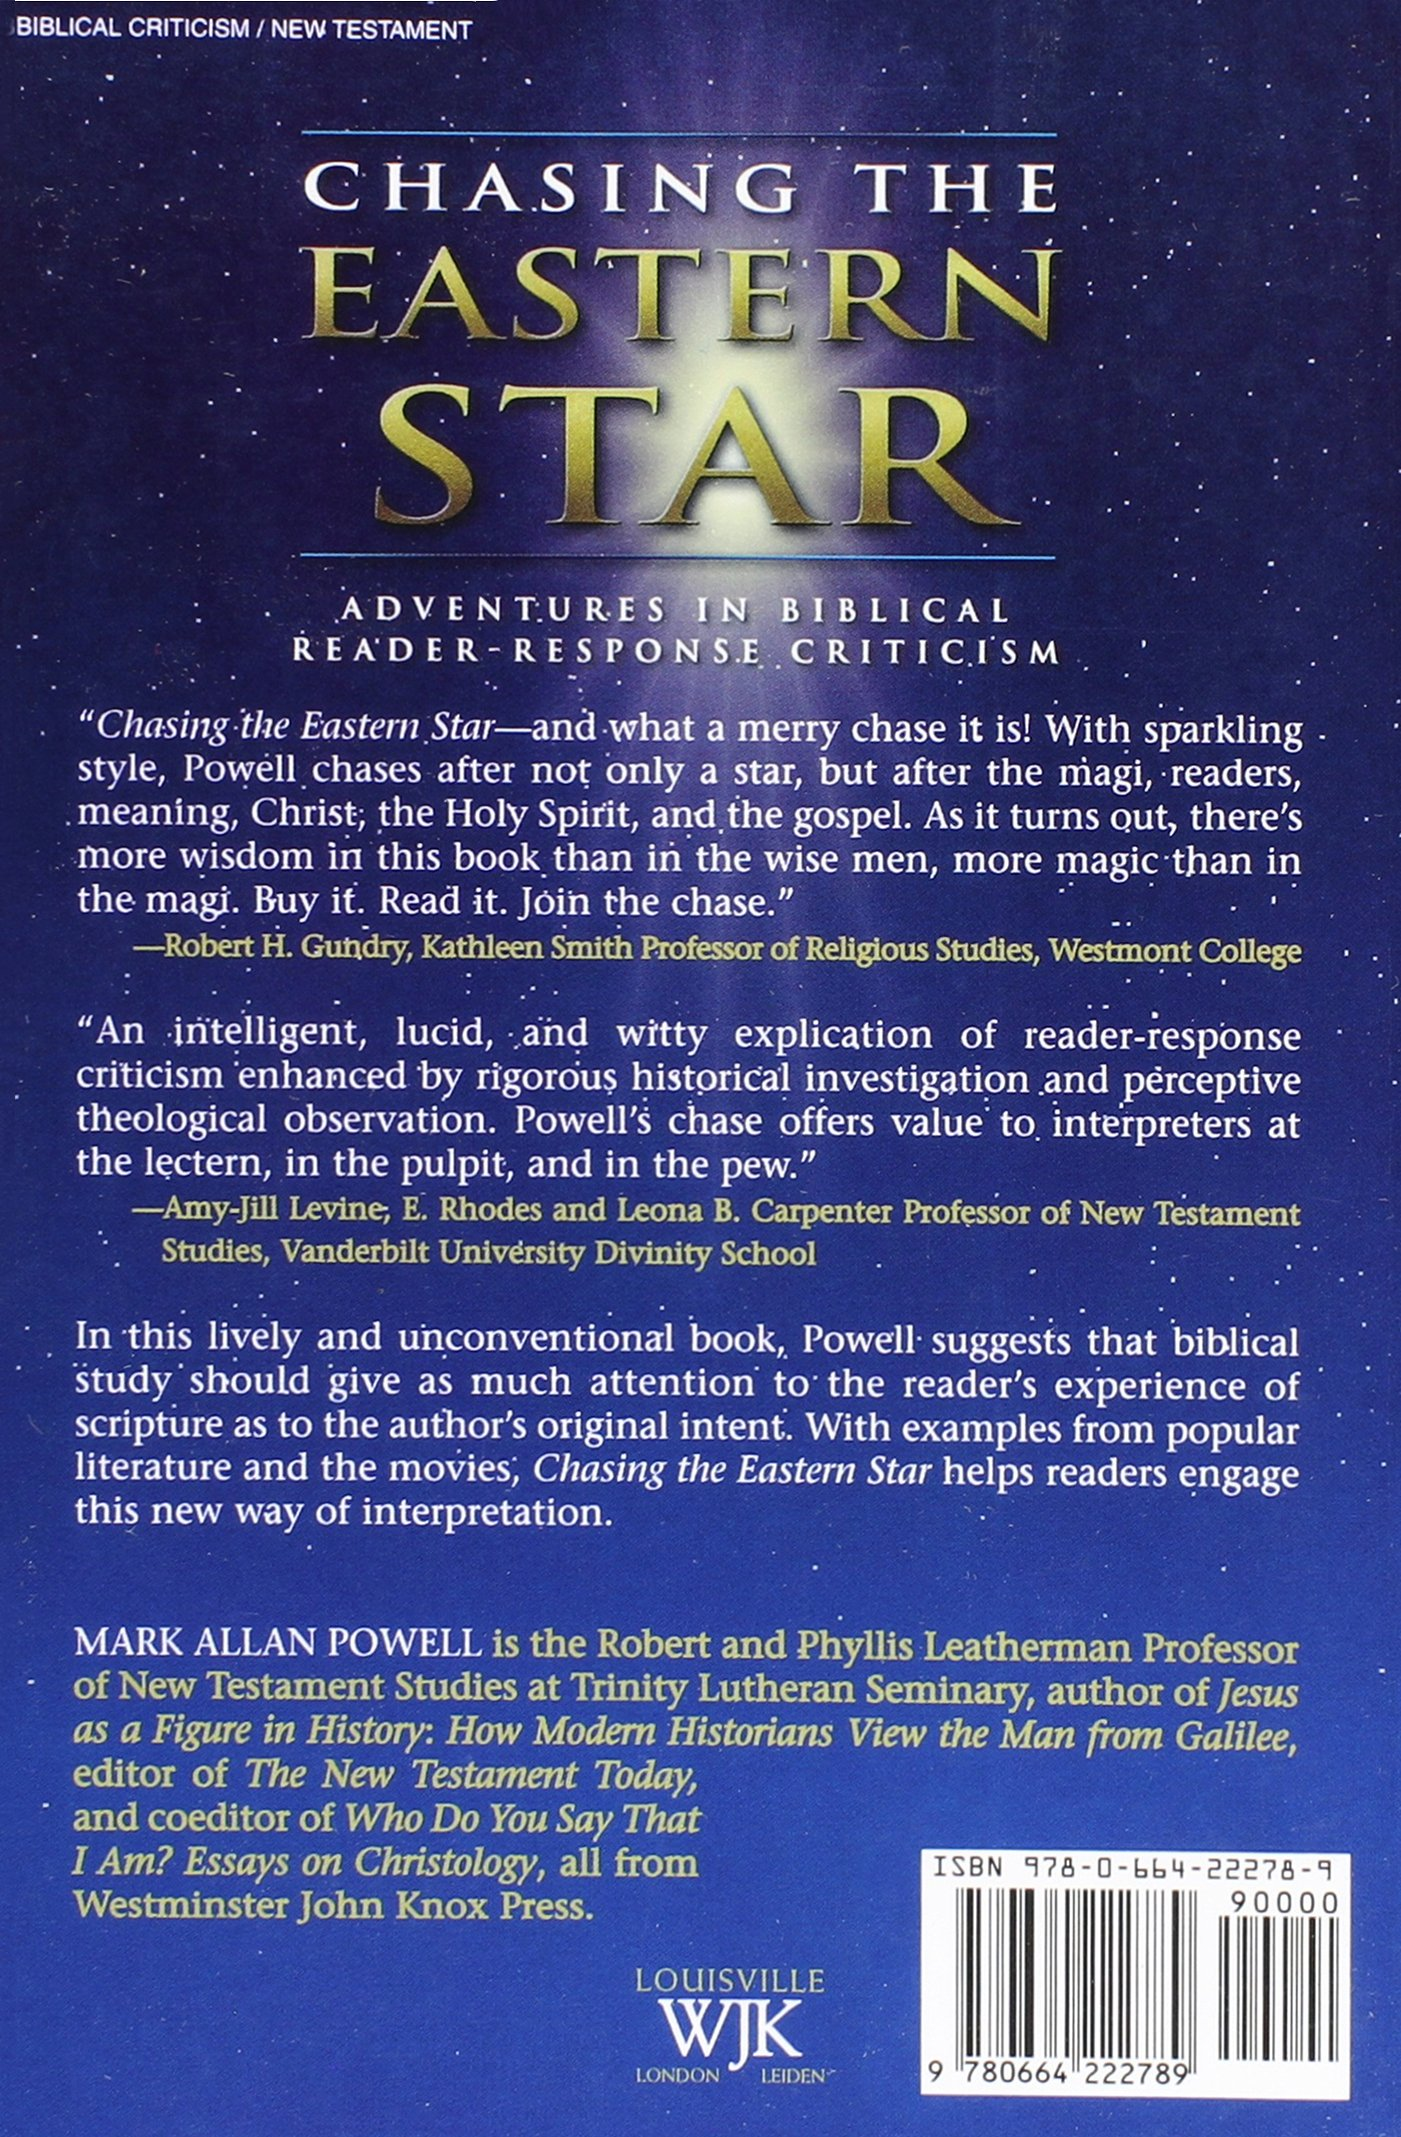 chasing the eastern star adventures in biblical reader response chasing the eastern star adventures in biblical reader response criticism mark allan powell 9780664222789 com books